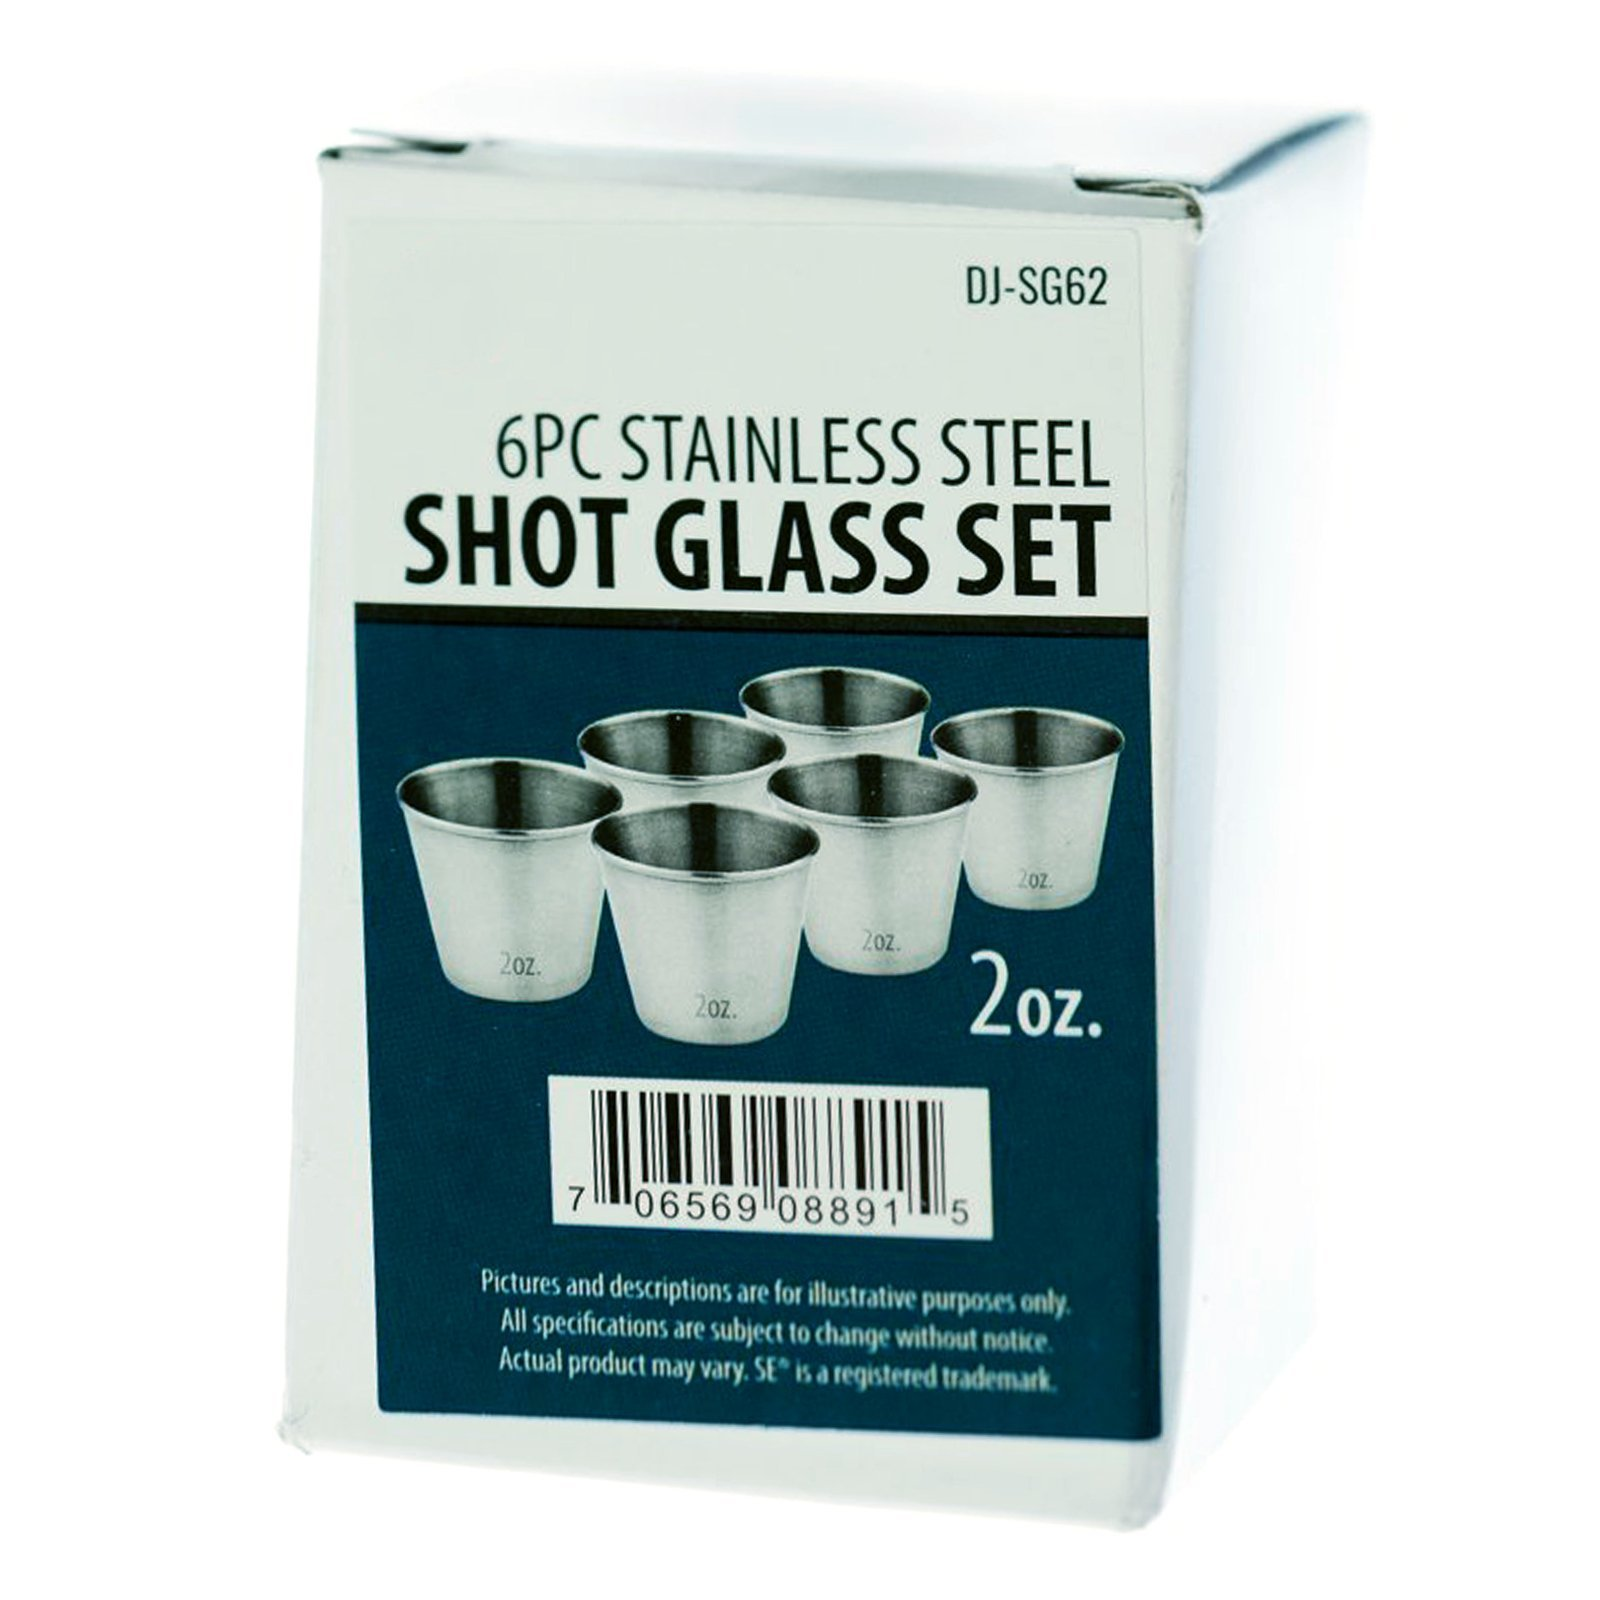 6pc Stainless Steel Shot Glass Set